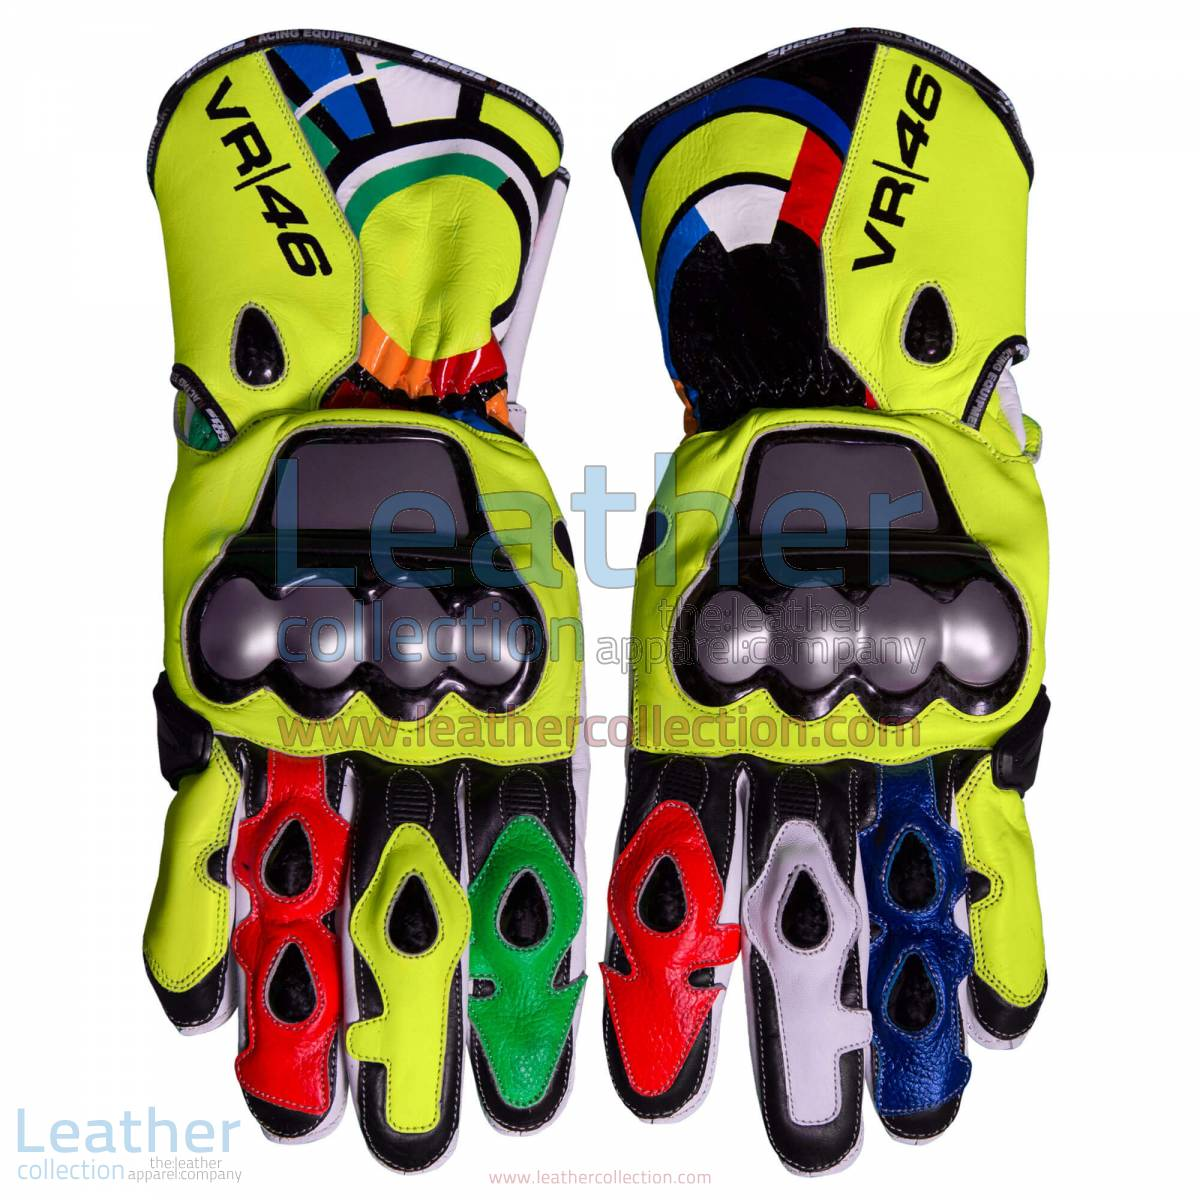 Valentino Rossi 2012 Leather Racing Gloves | leather racing gloves,valentino rossi gloves